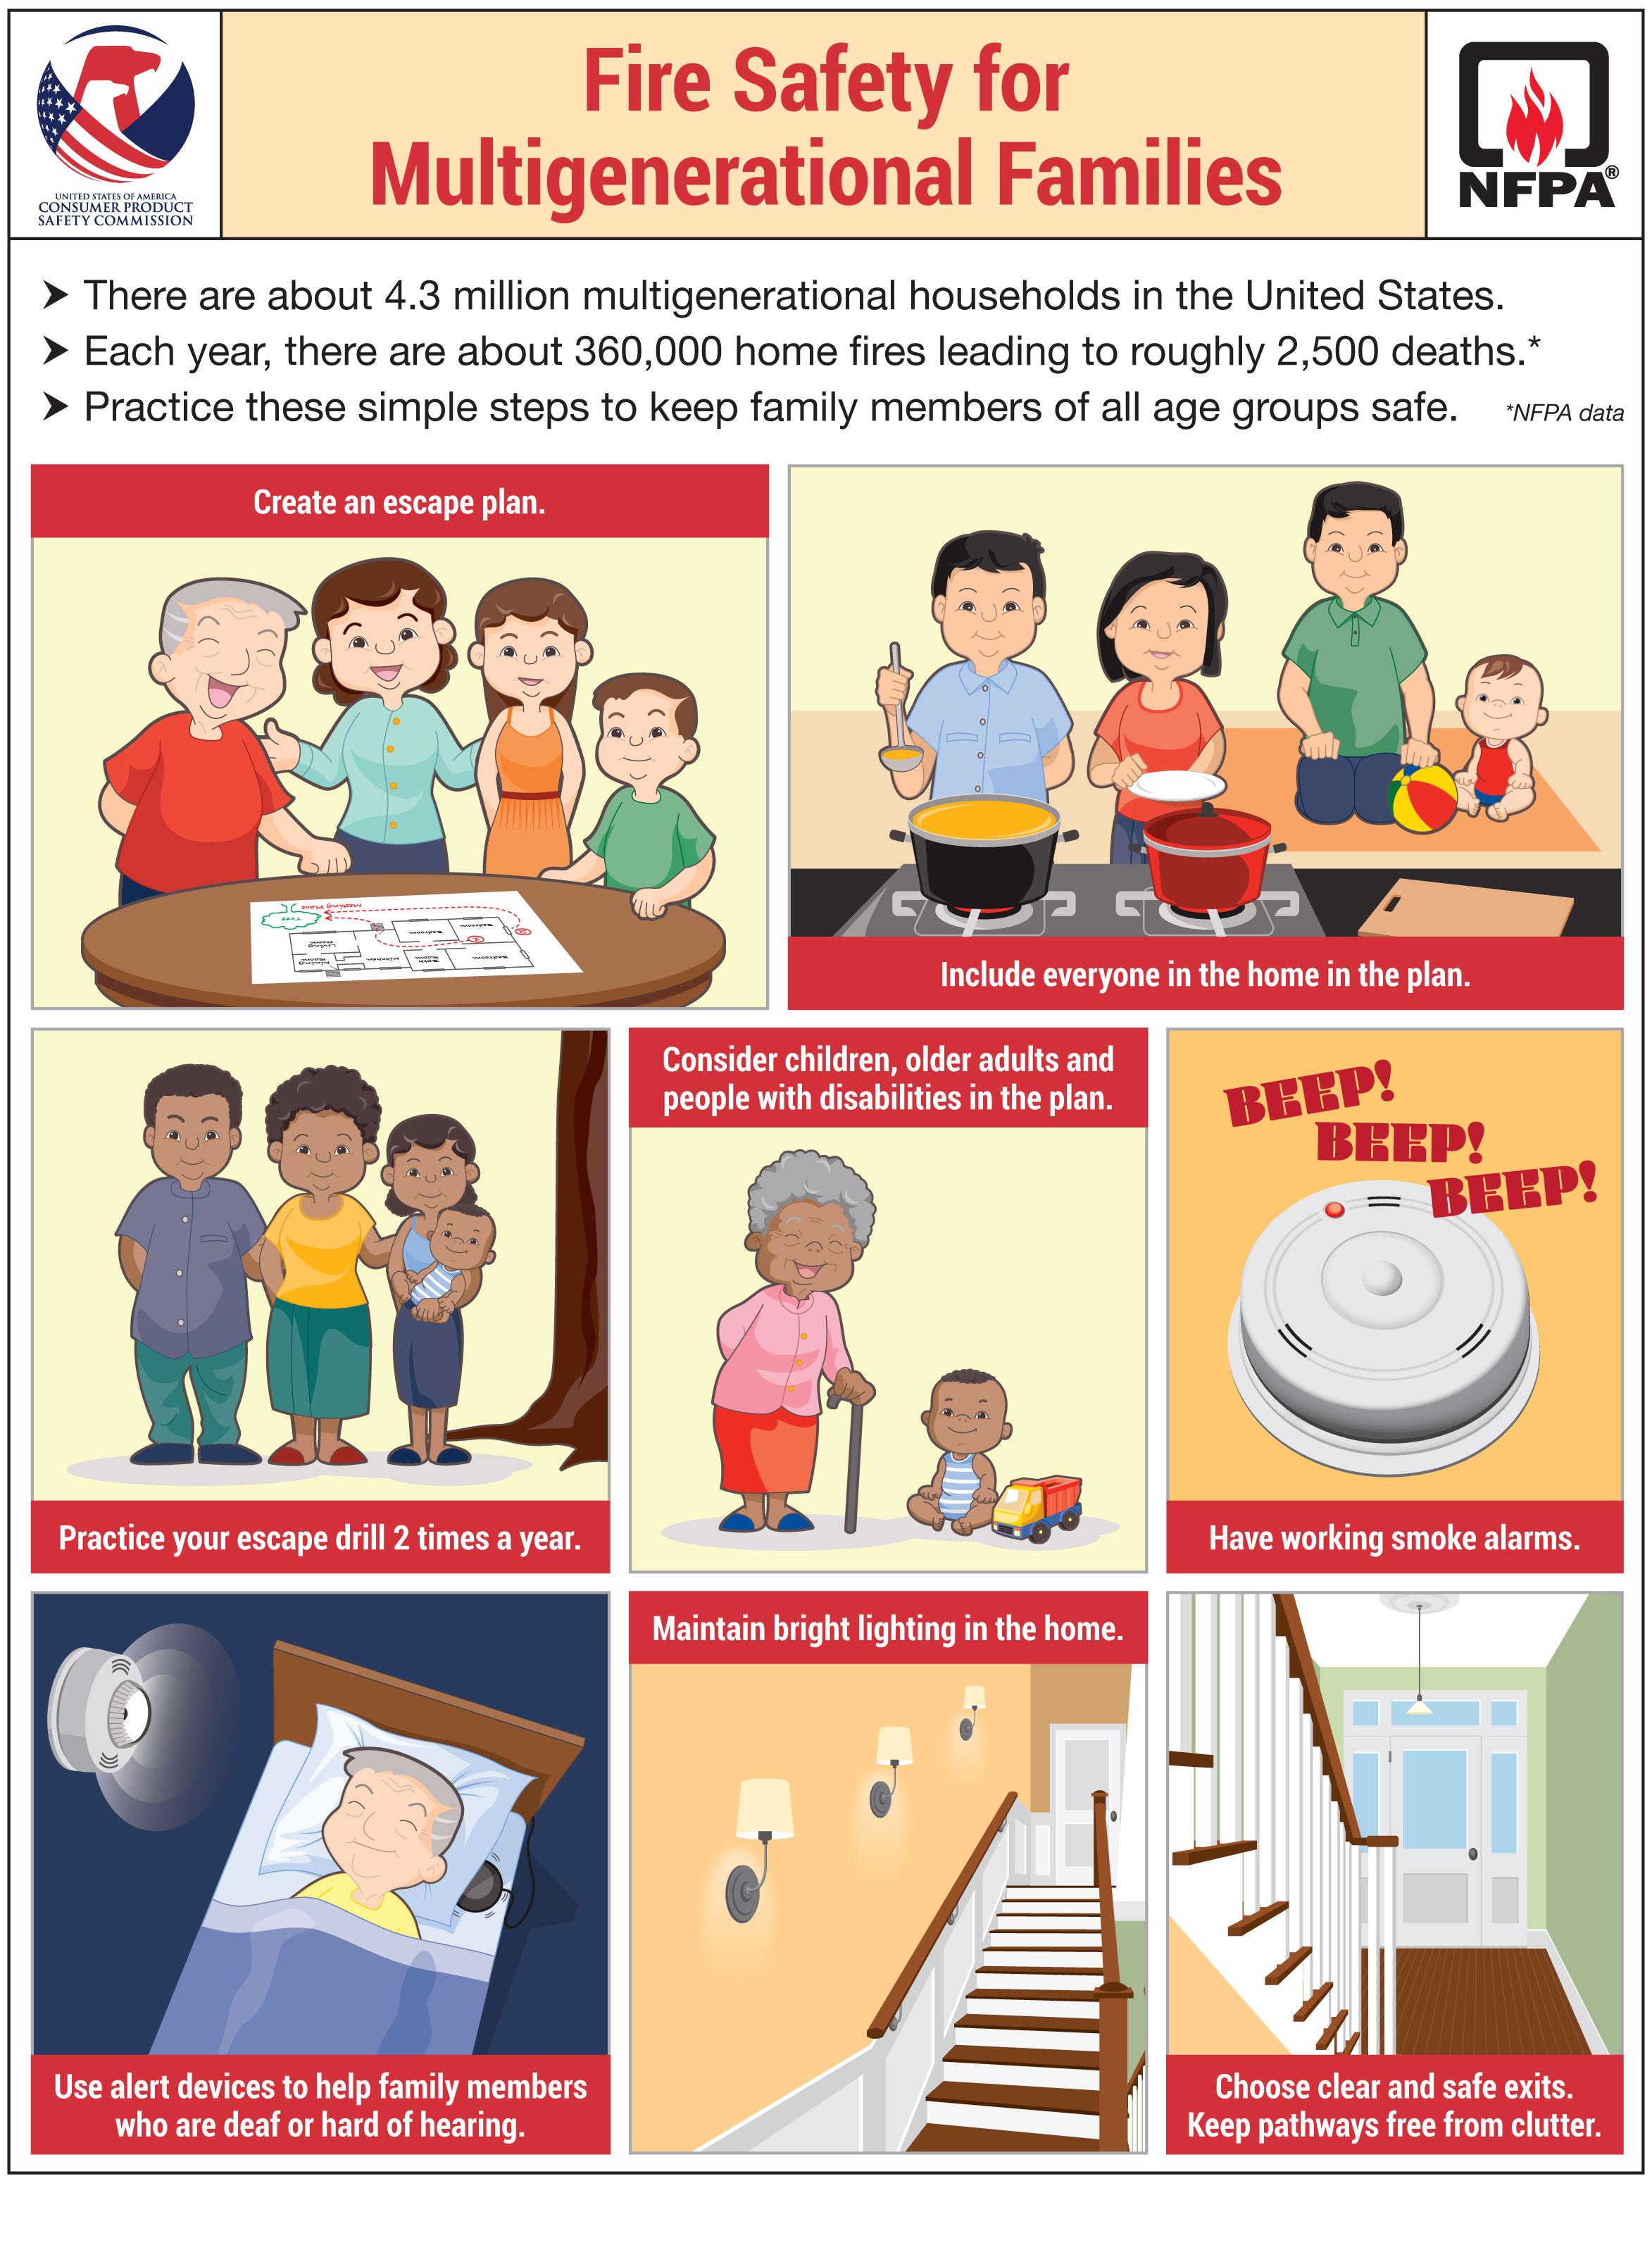 Nfpa tool kit fire safety for multigenerational families for Fire escape plan for kids